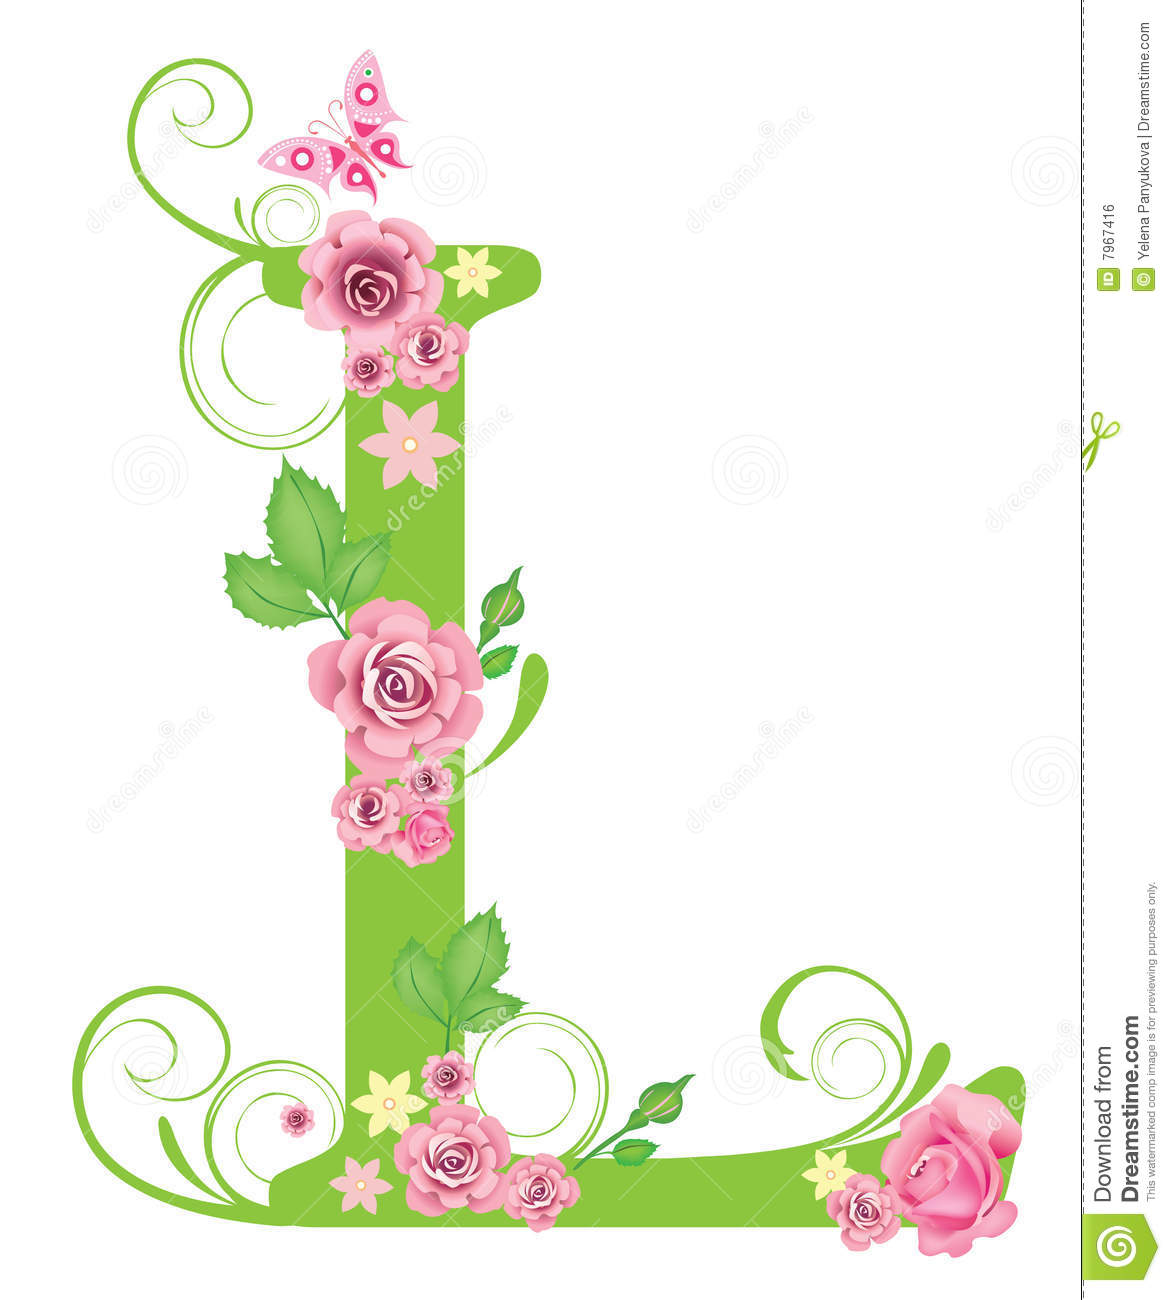 Letter L With Roses Stock Vector Illustration Of Symbol 7967416